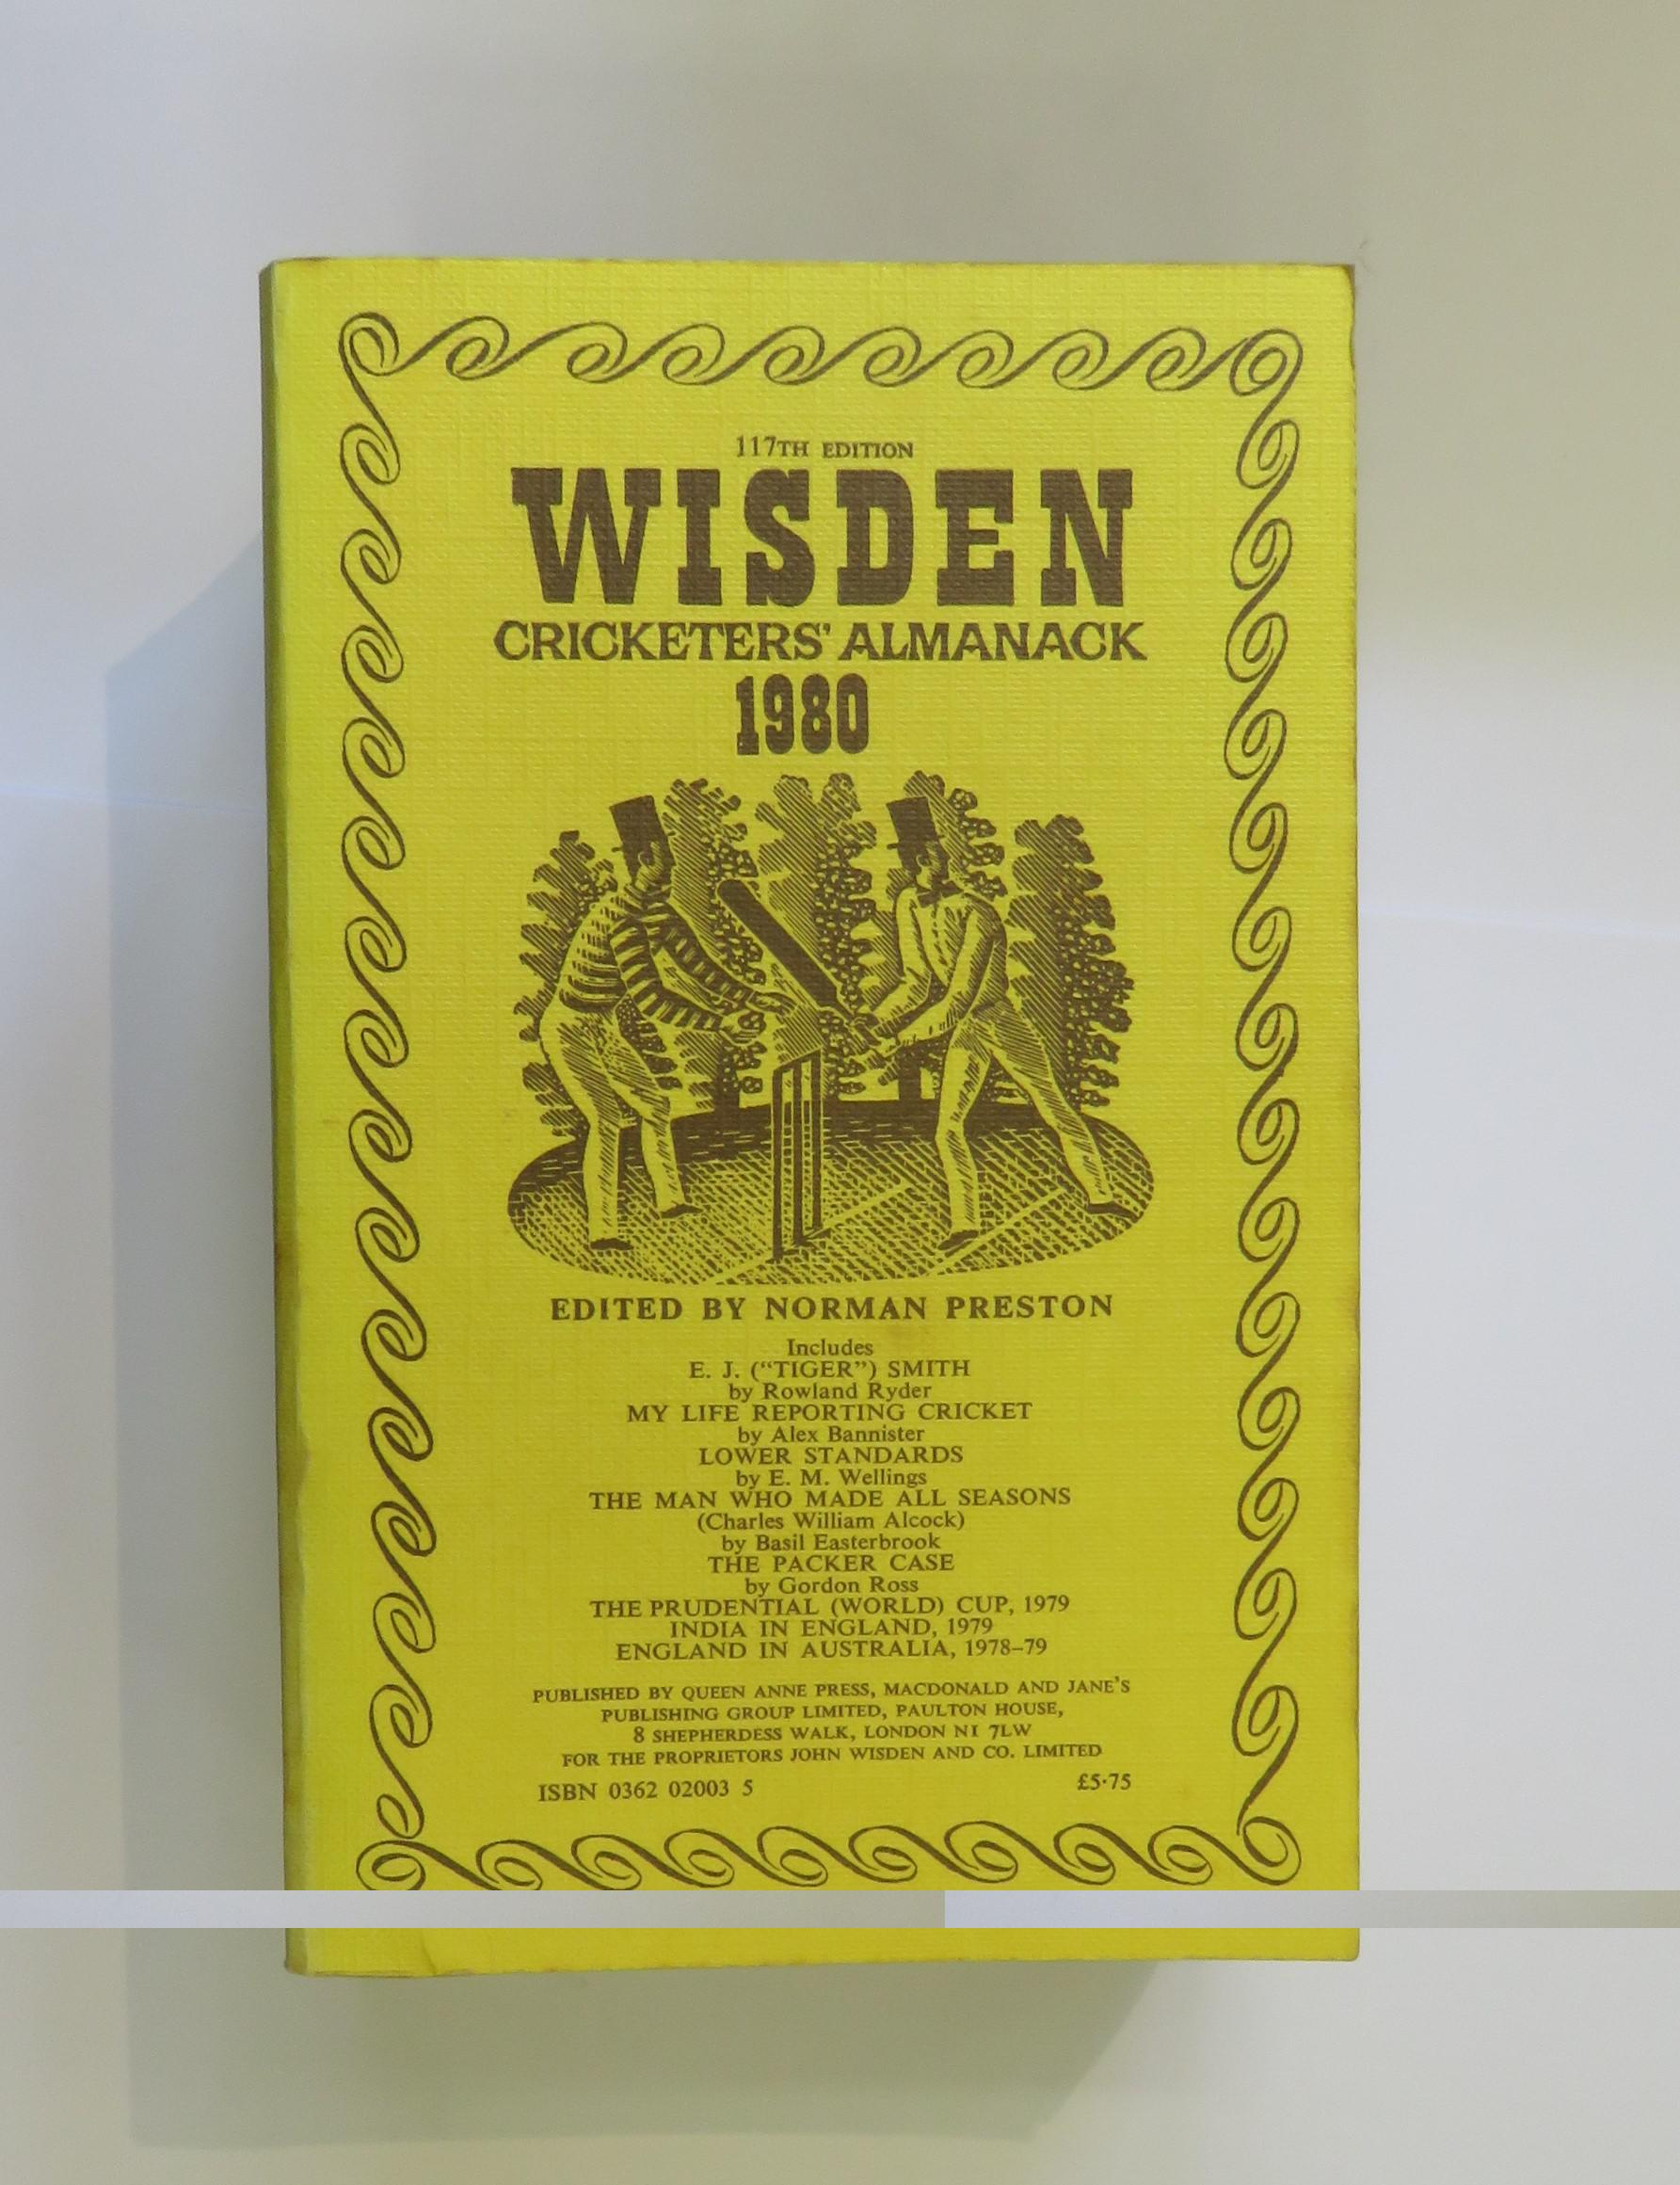 Wisden Cricketers' Almanack 1980